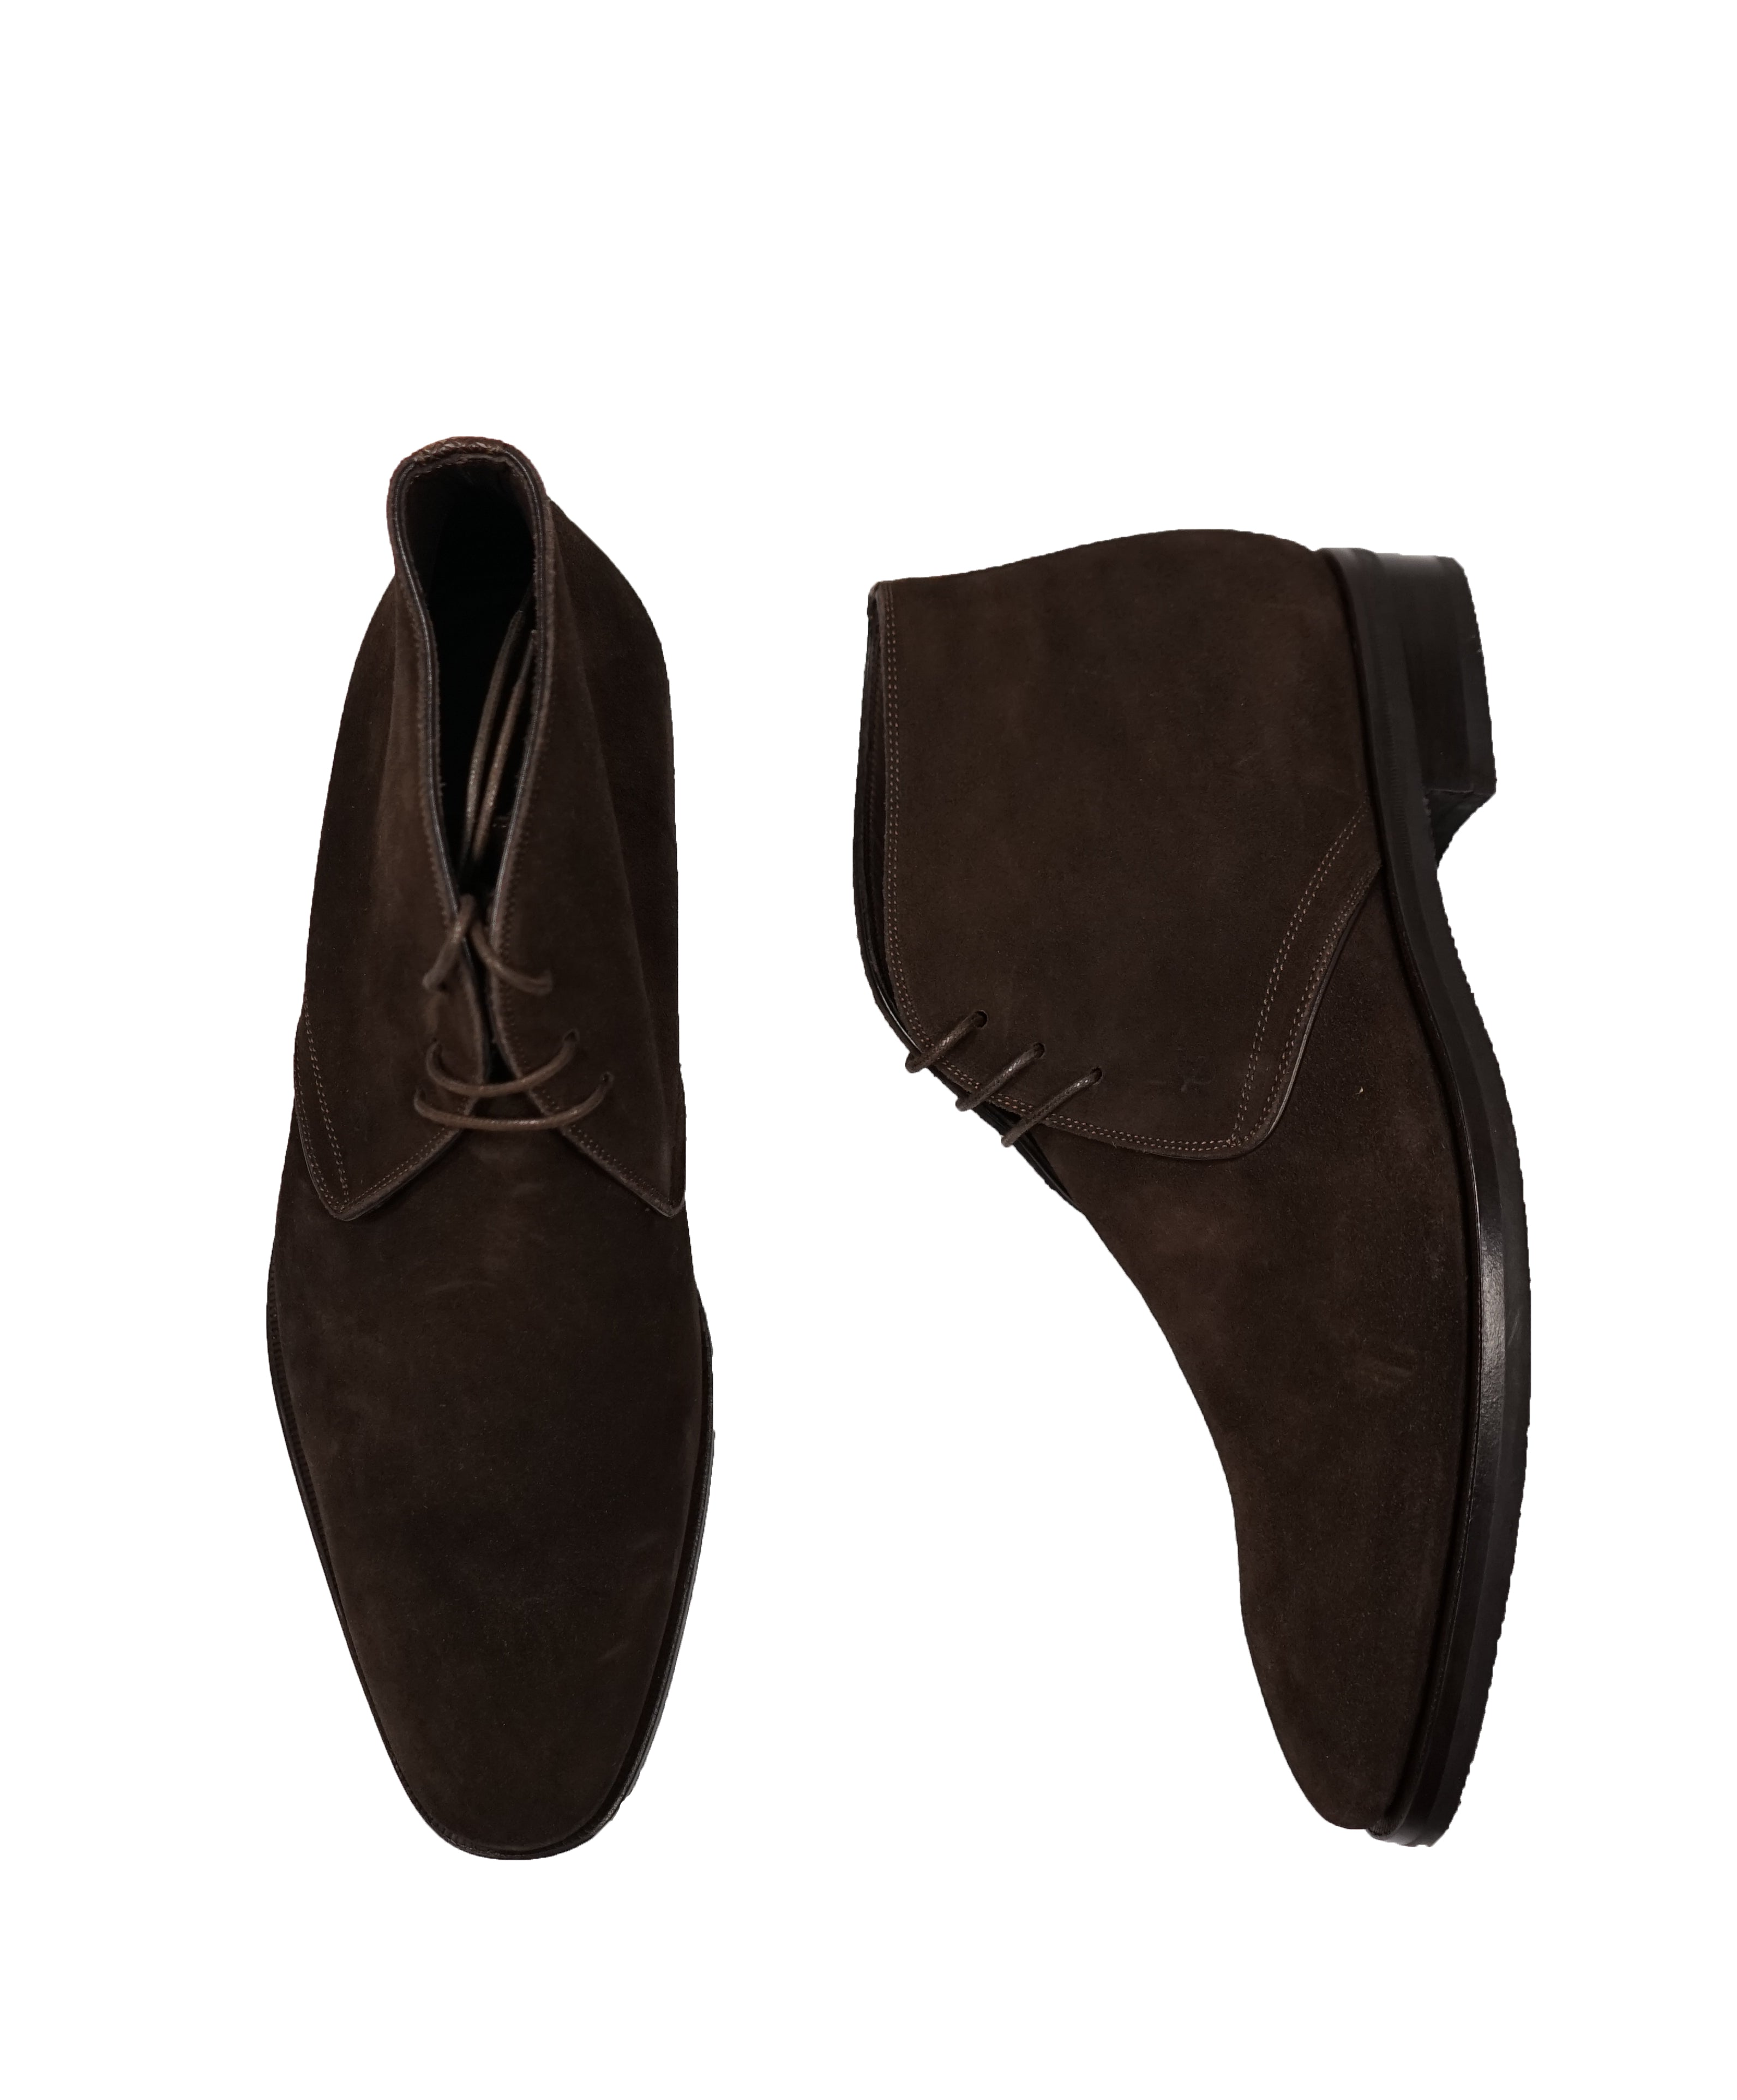 CANALI - Brown Suede Lace-Up Ankle Boots - 11